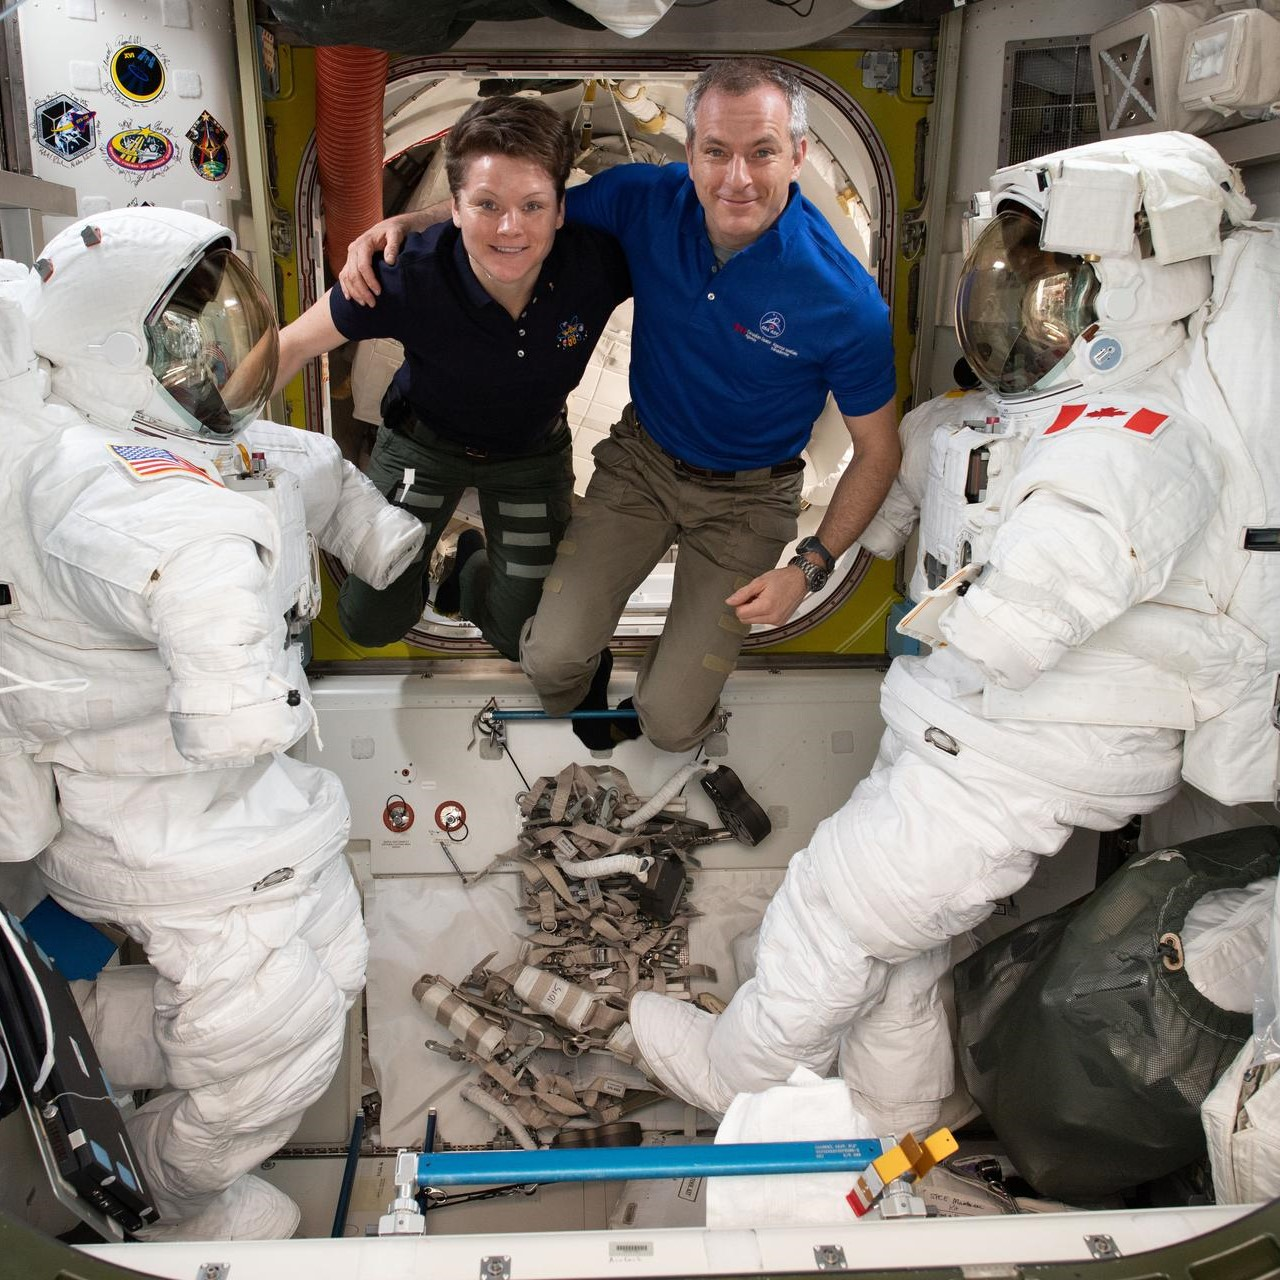 Astronauts Anne McClain and David Saint-Jacques